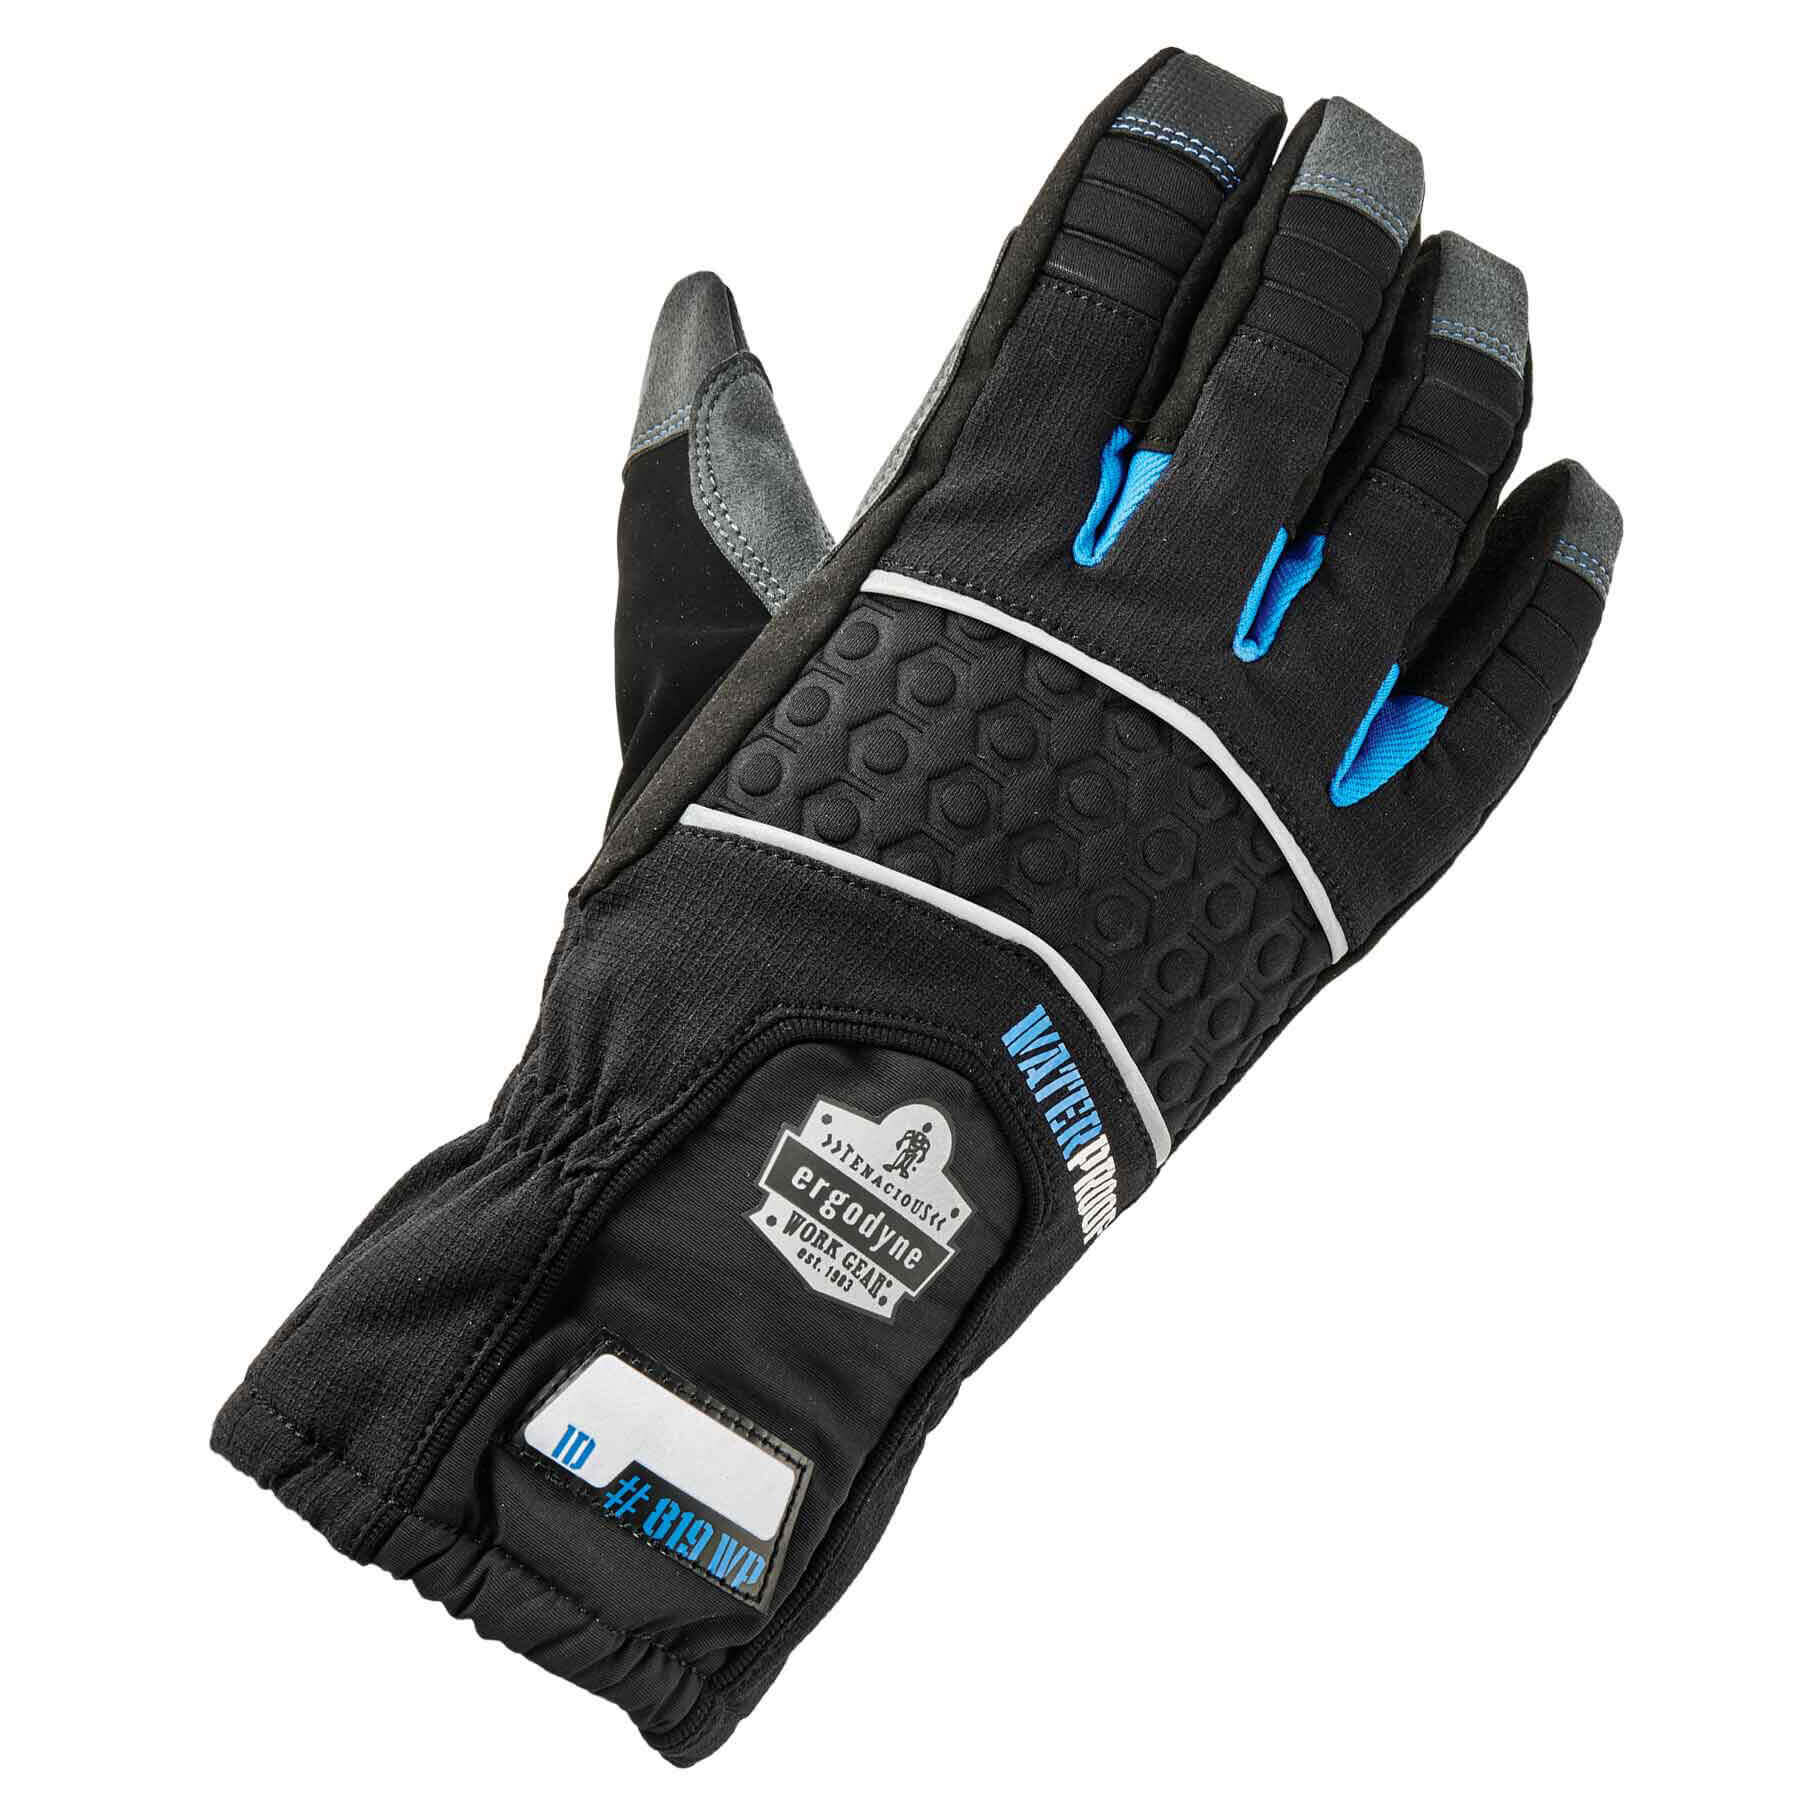 Ergodyne ProFlex 819WP Extreme Thermal Waterproof Insulated Work Gloves, Touchscreen Capable, Black, XL